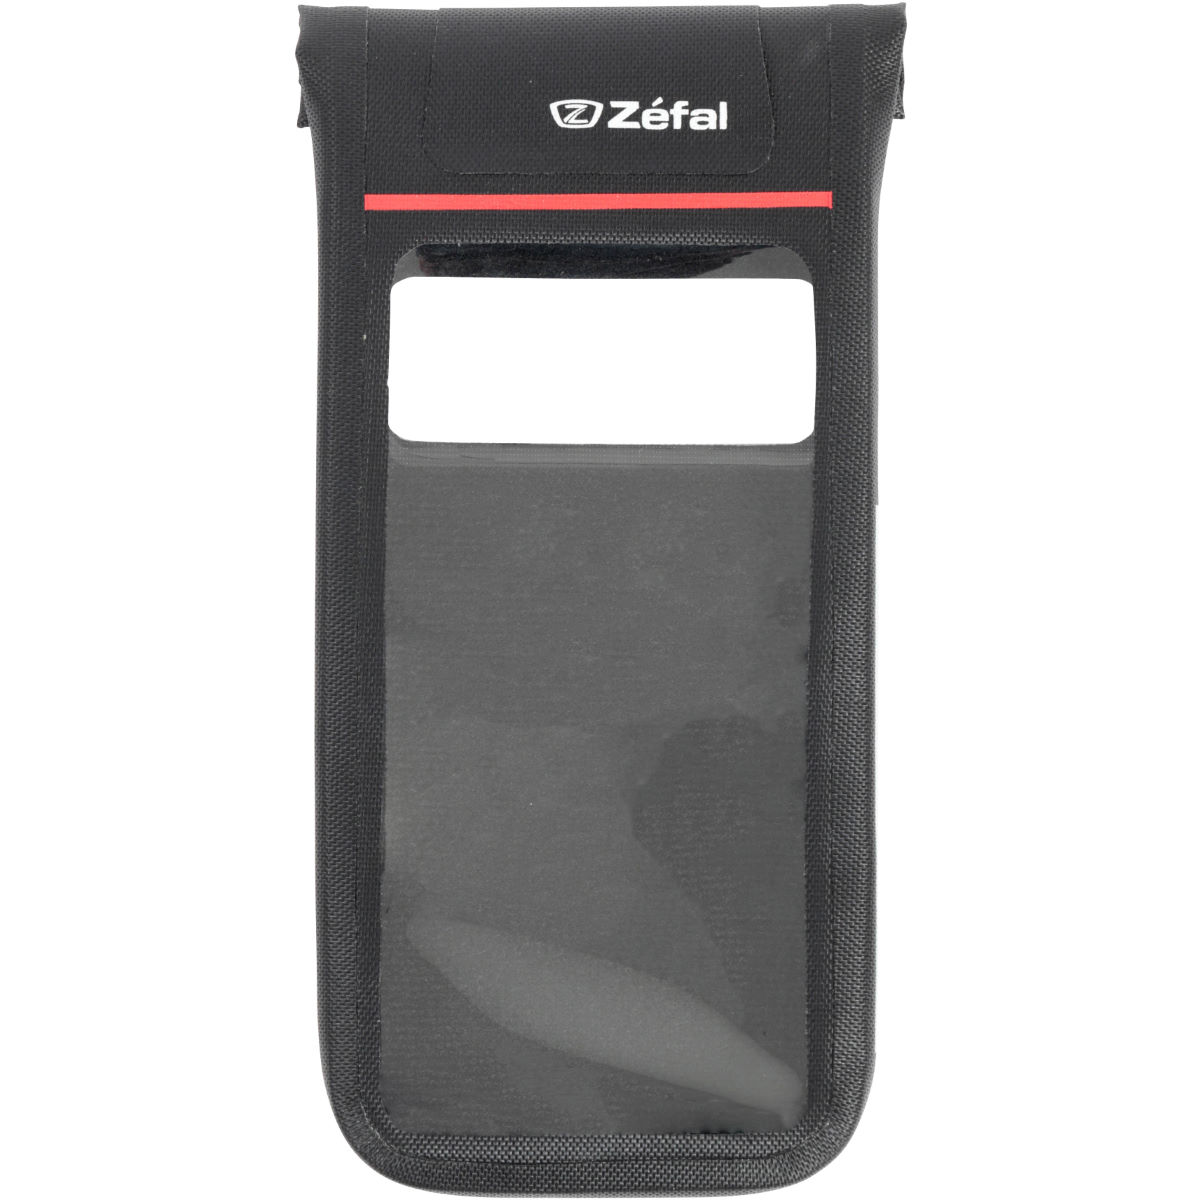 Zefal Zefal Z Console Dry Smartphone Cover   Bike Bags